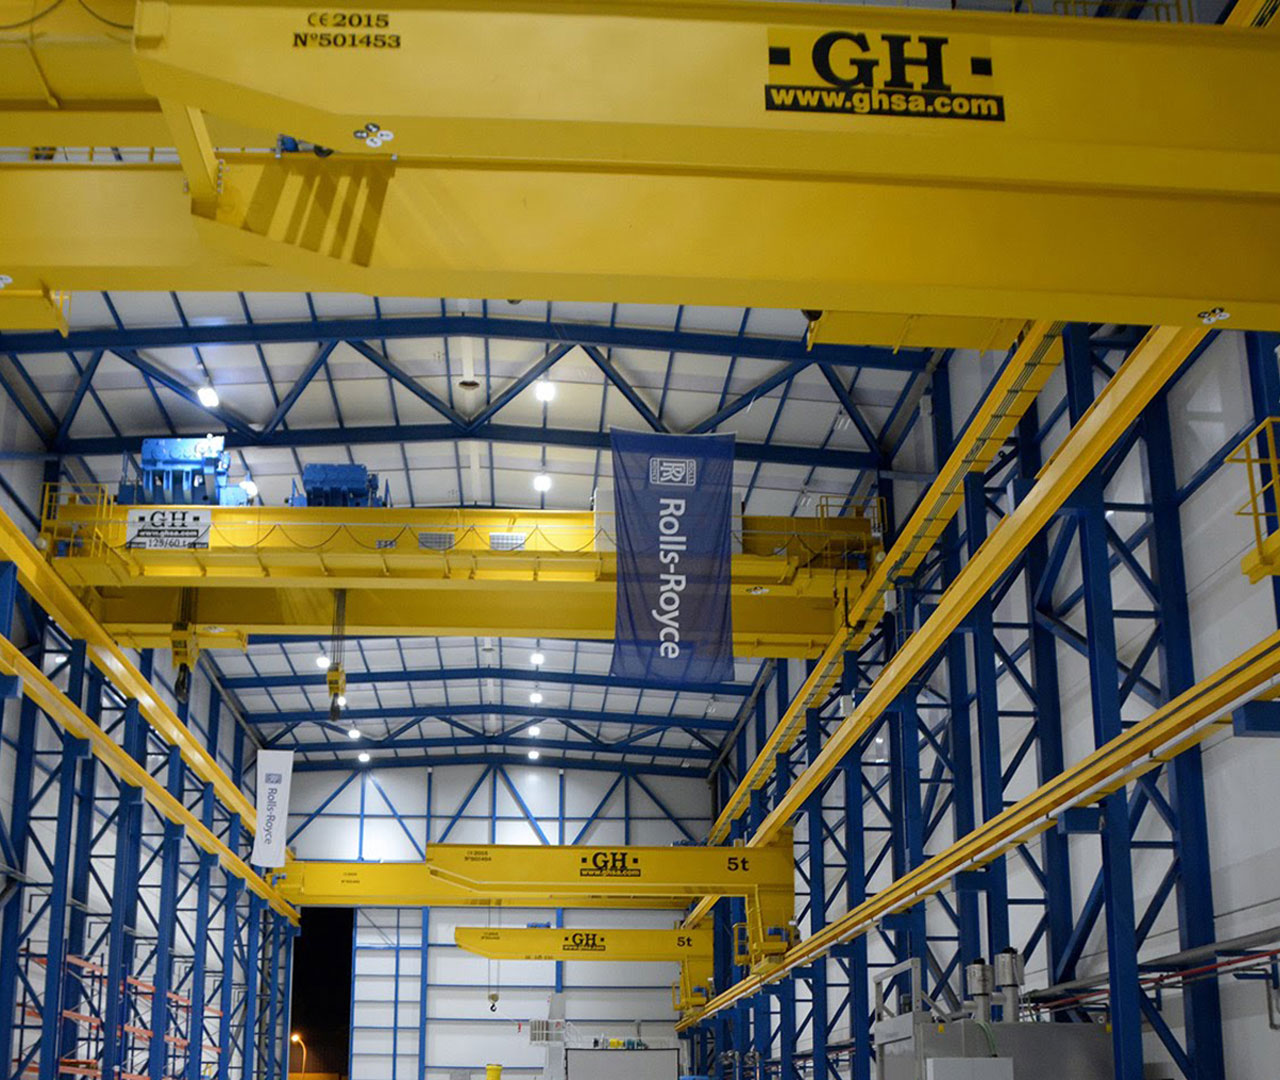 double overhead cranes and cantilever cranes